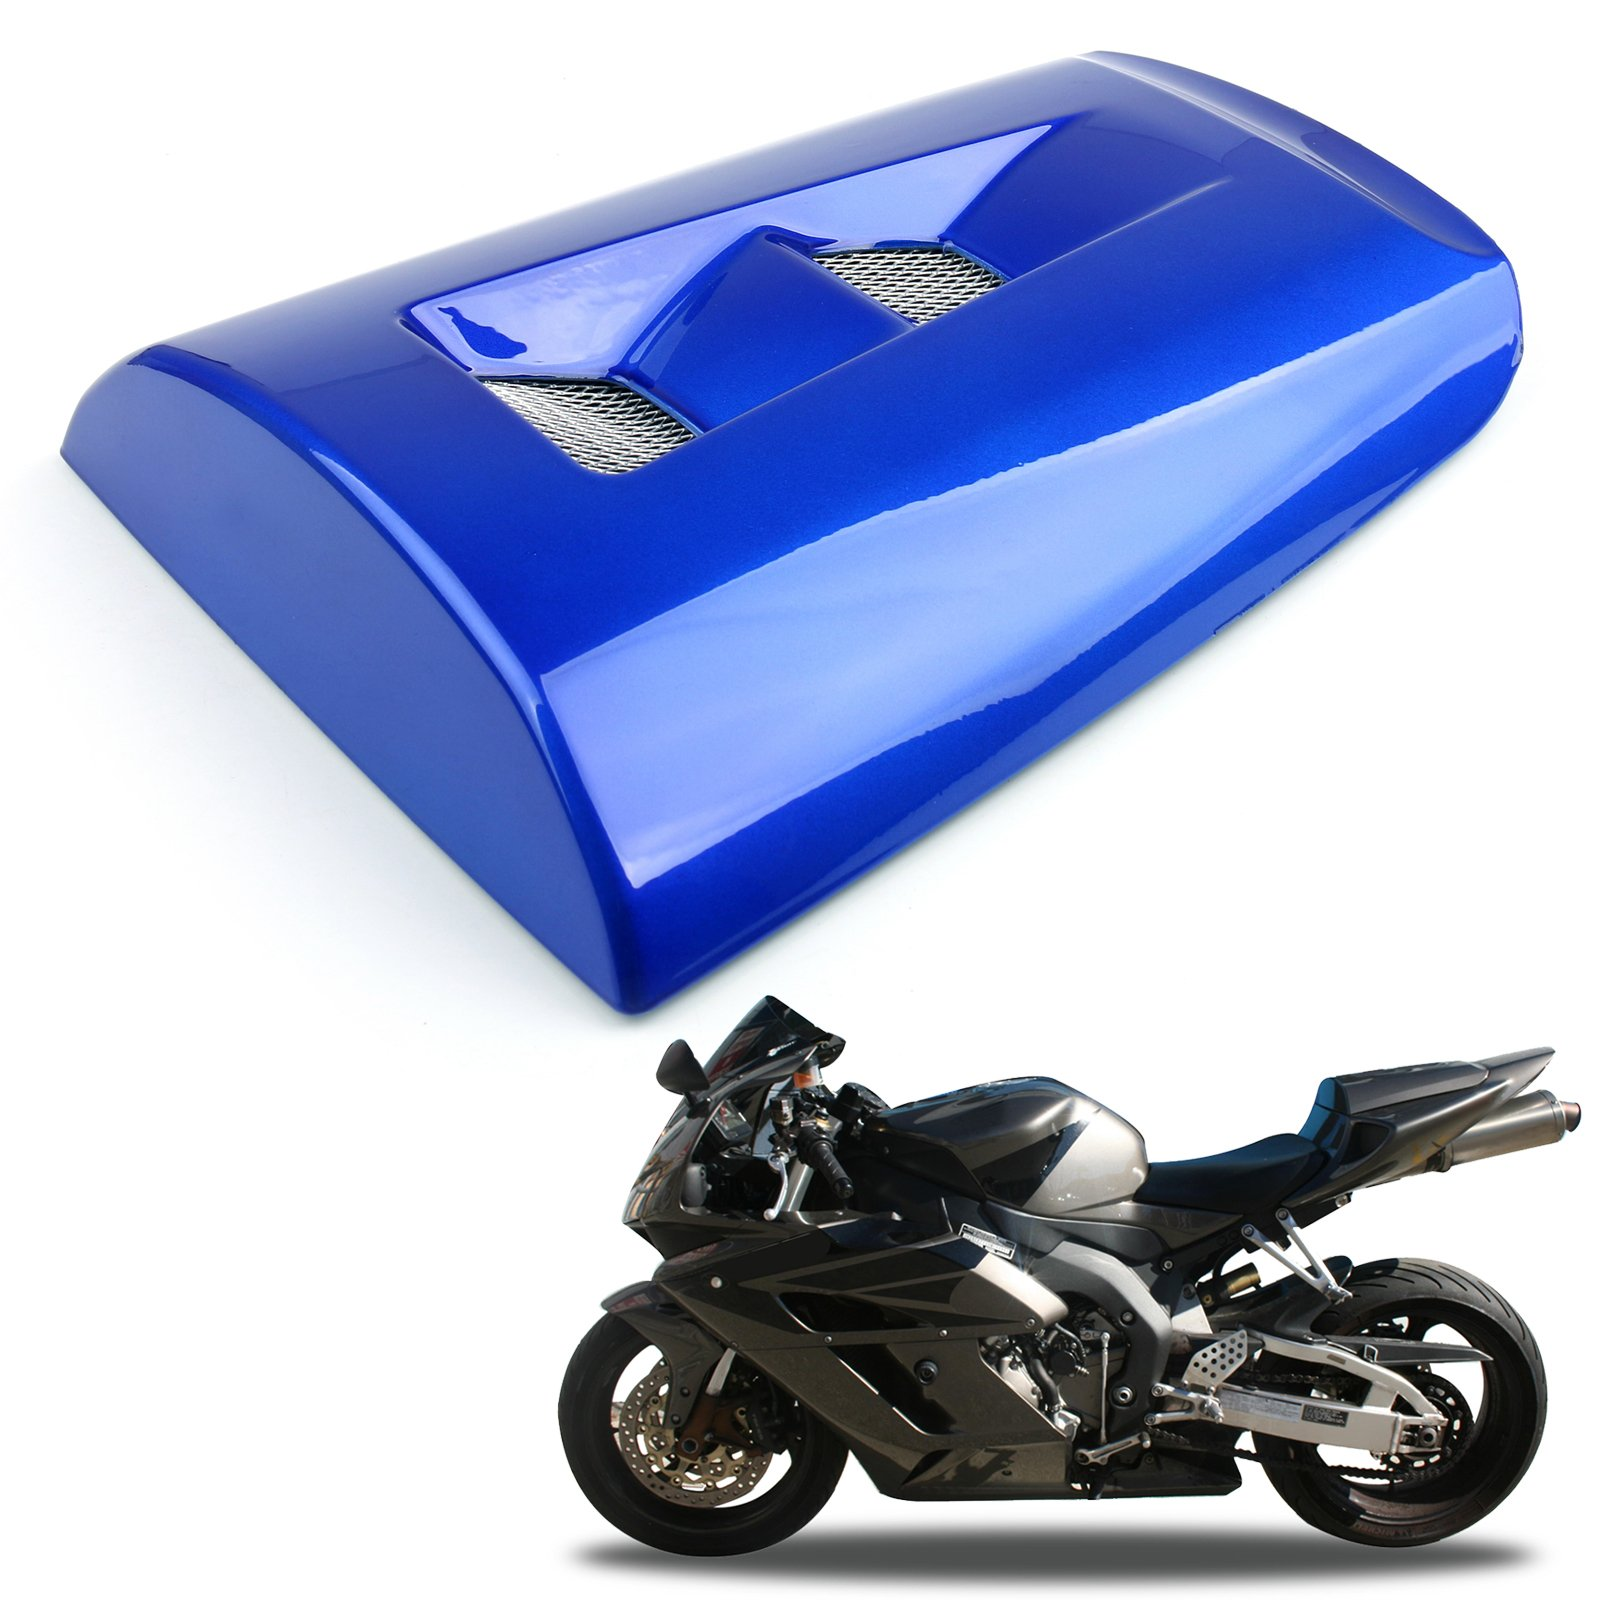 Artudatech Rear Seat Fairing Cover Cowl For Honda CBR 1000 RR 2004-2007 Blue